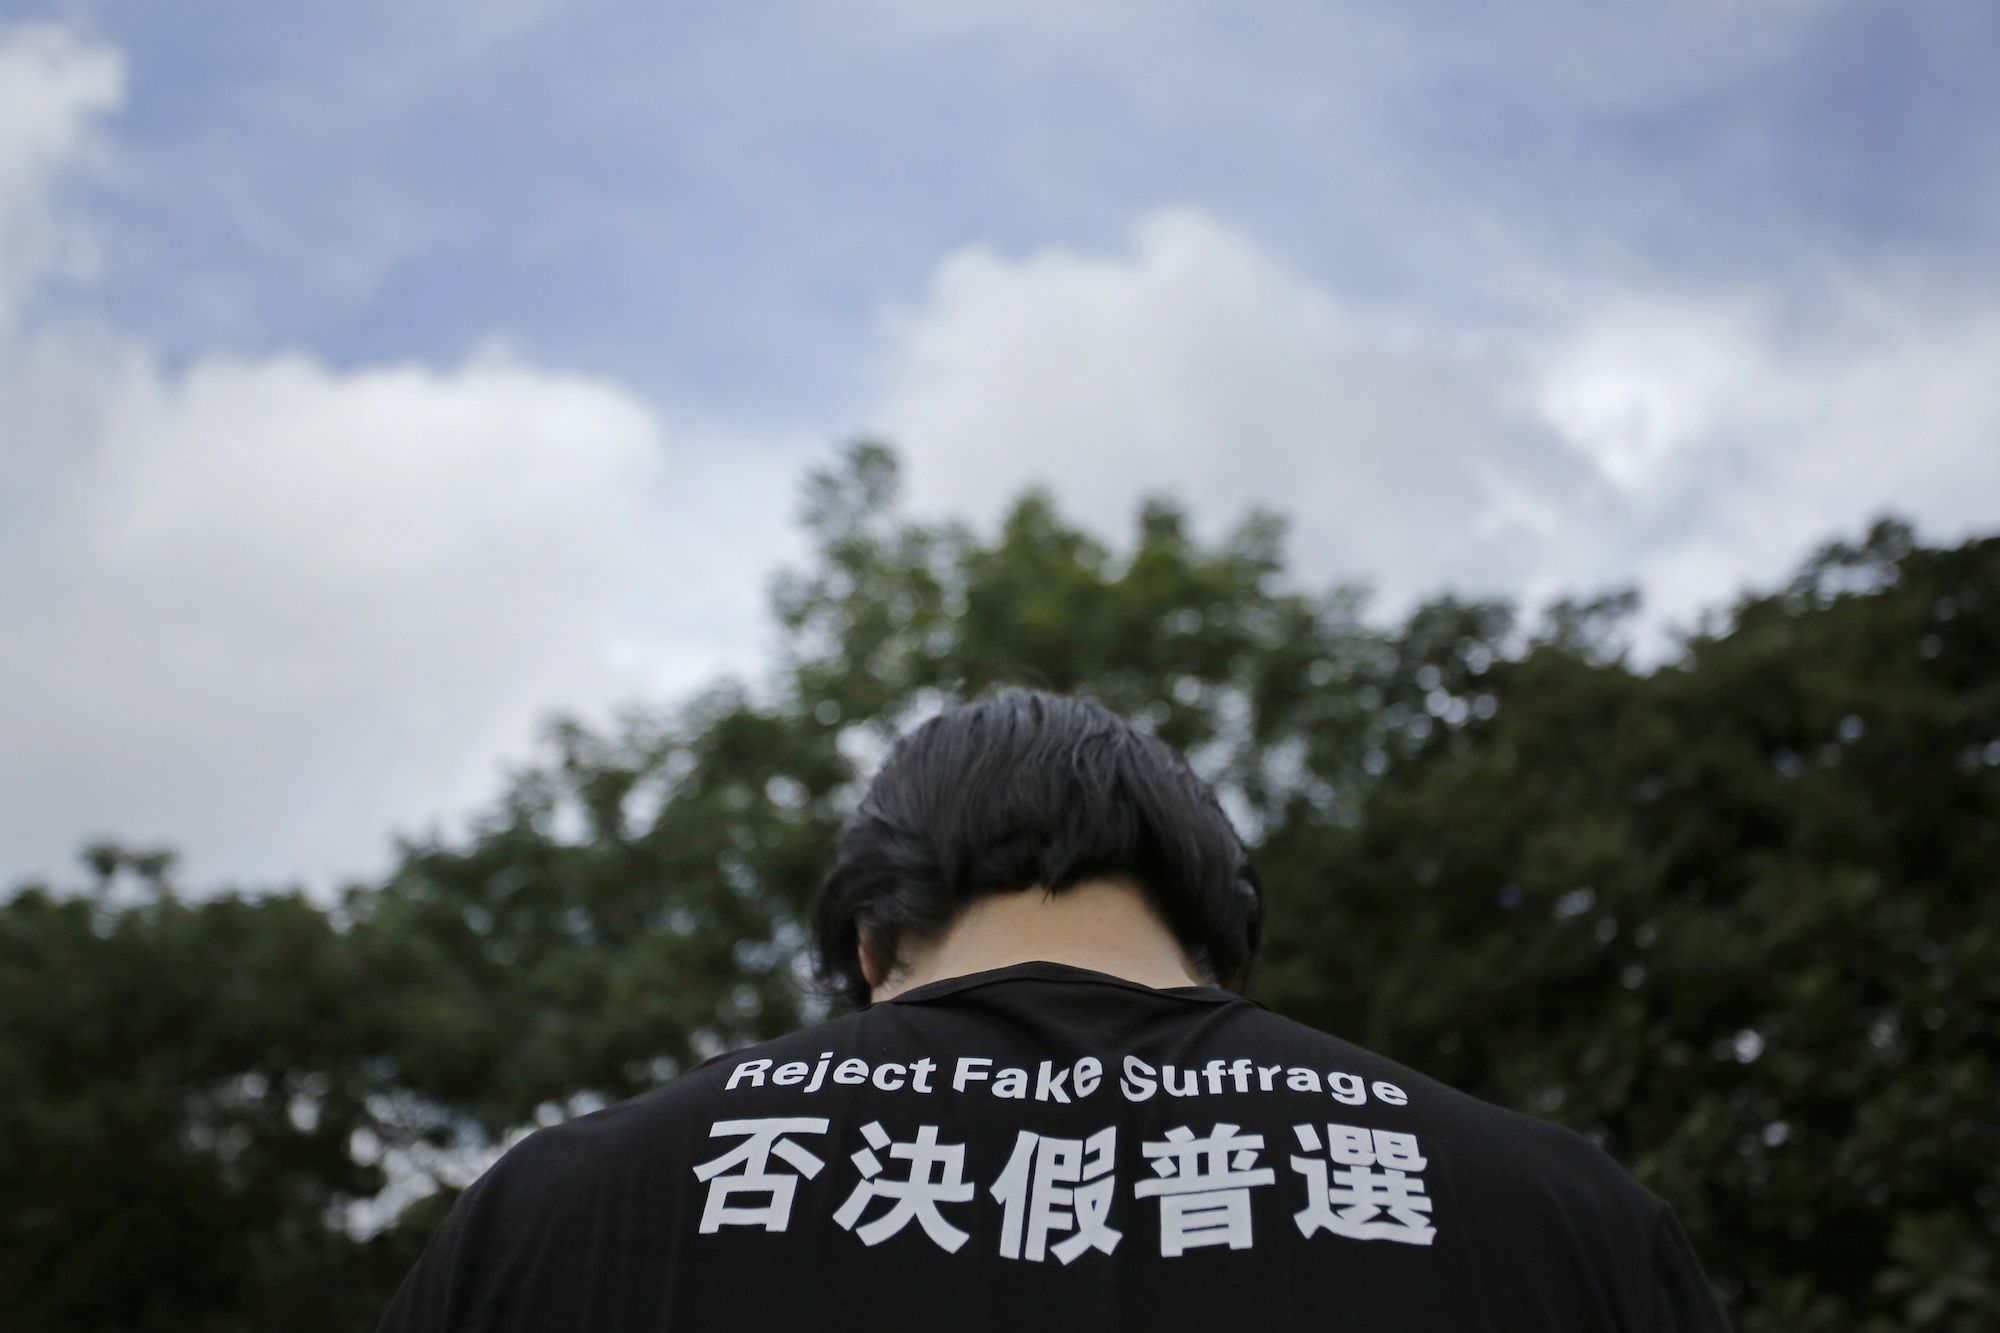 A protester wears a T-shirt with slogan during a rally as thousands of people march in a down town street to support for a veto of the government's electoral reform package in Hong Kong, Sunday, June 14, 2015. the rally is ahead of a crucial vote by lawmakers on controversial Beijing-backed election reforms that drew huge crowds of protesters into the streets last year.